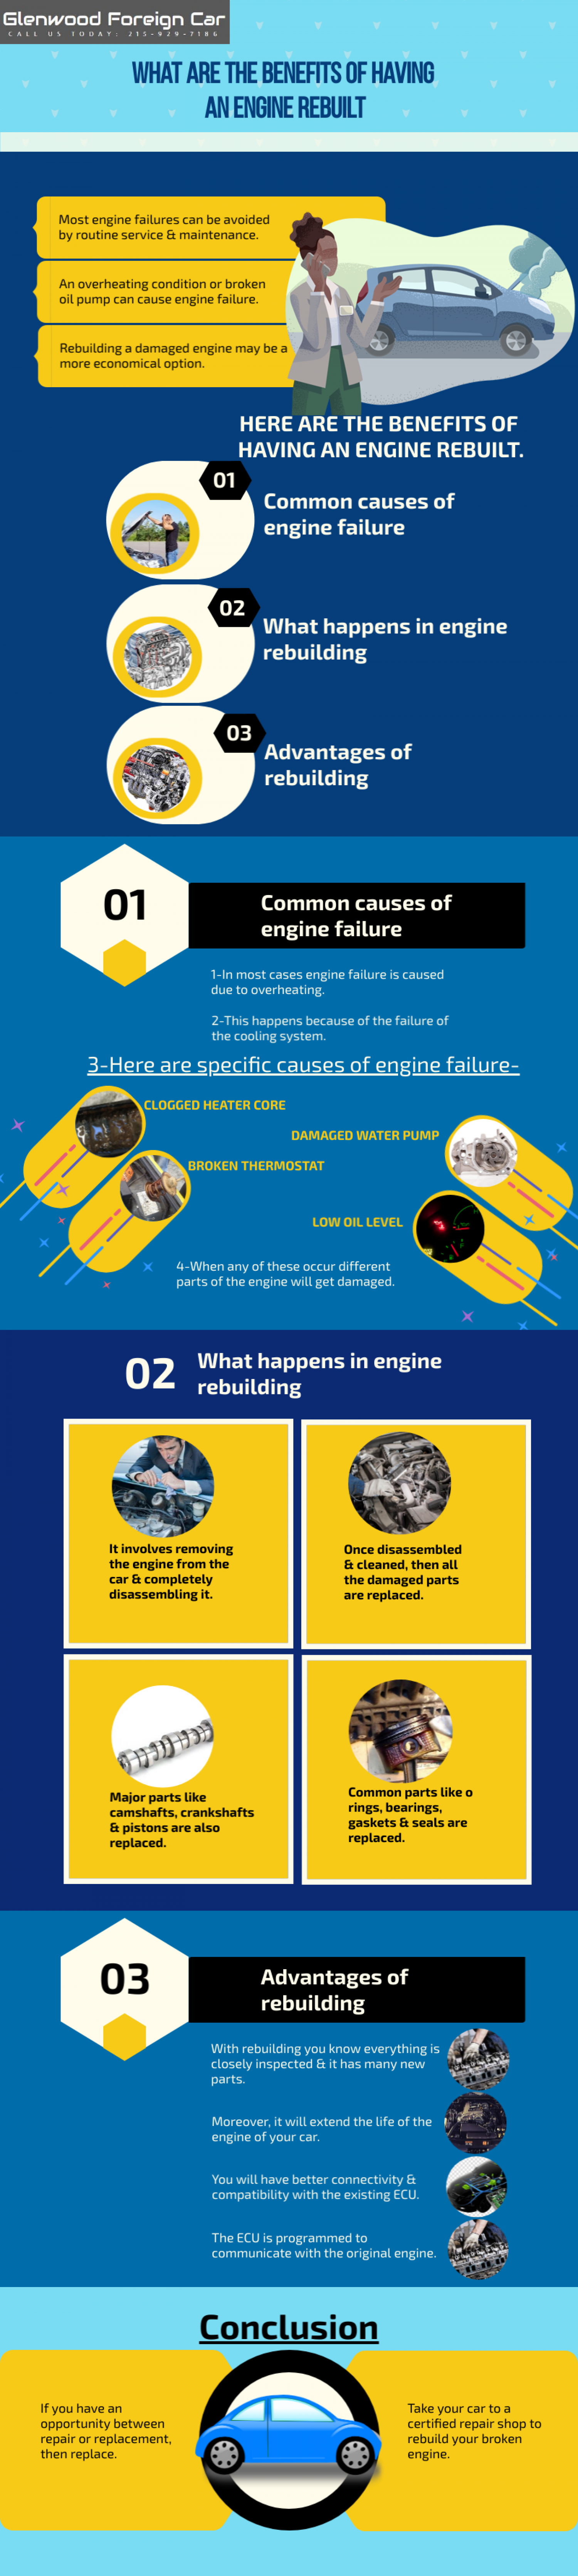 What are the Benefits of Having an Engine Rebuilt Infographic